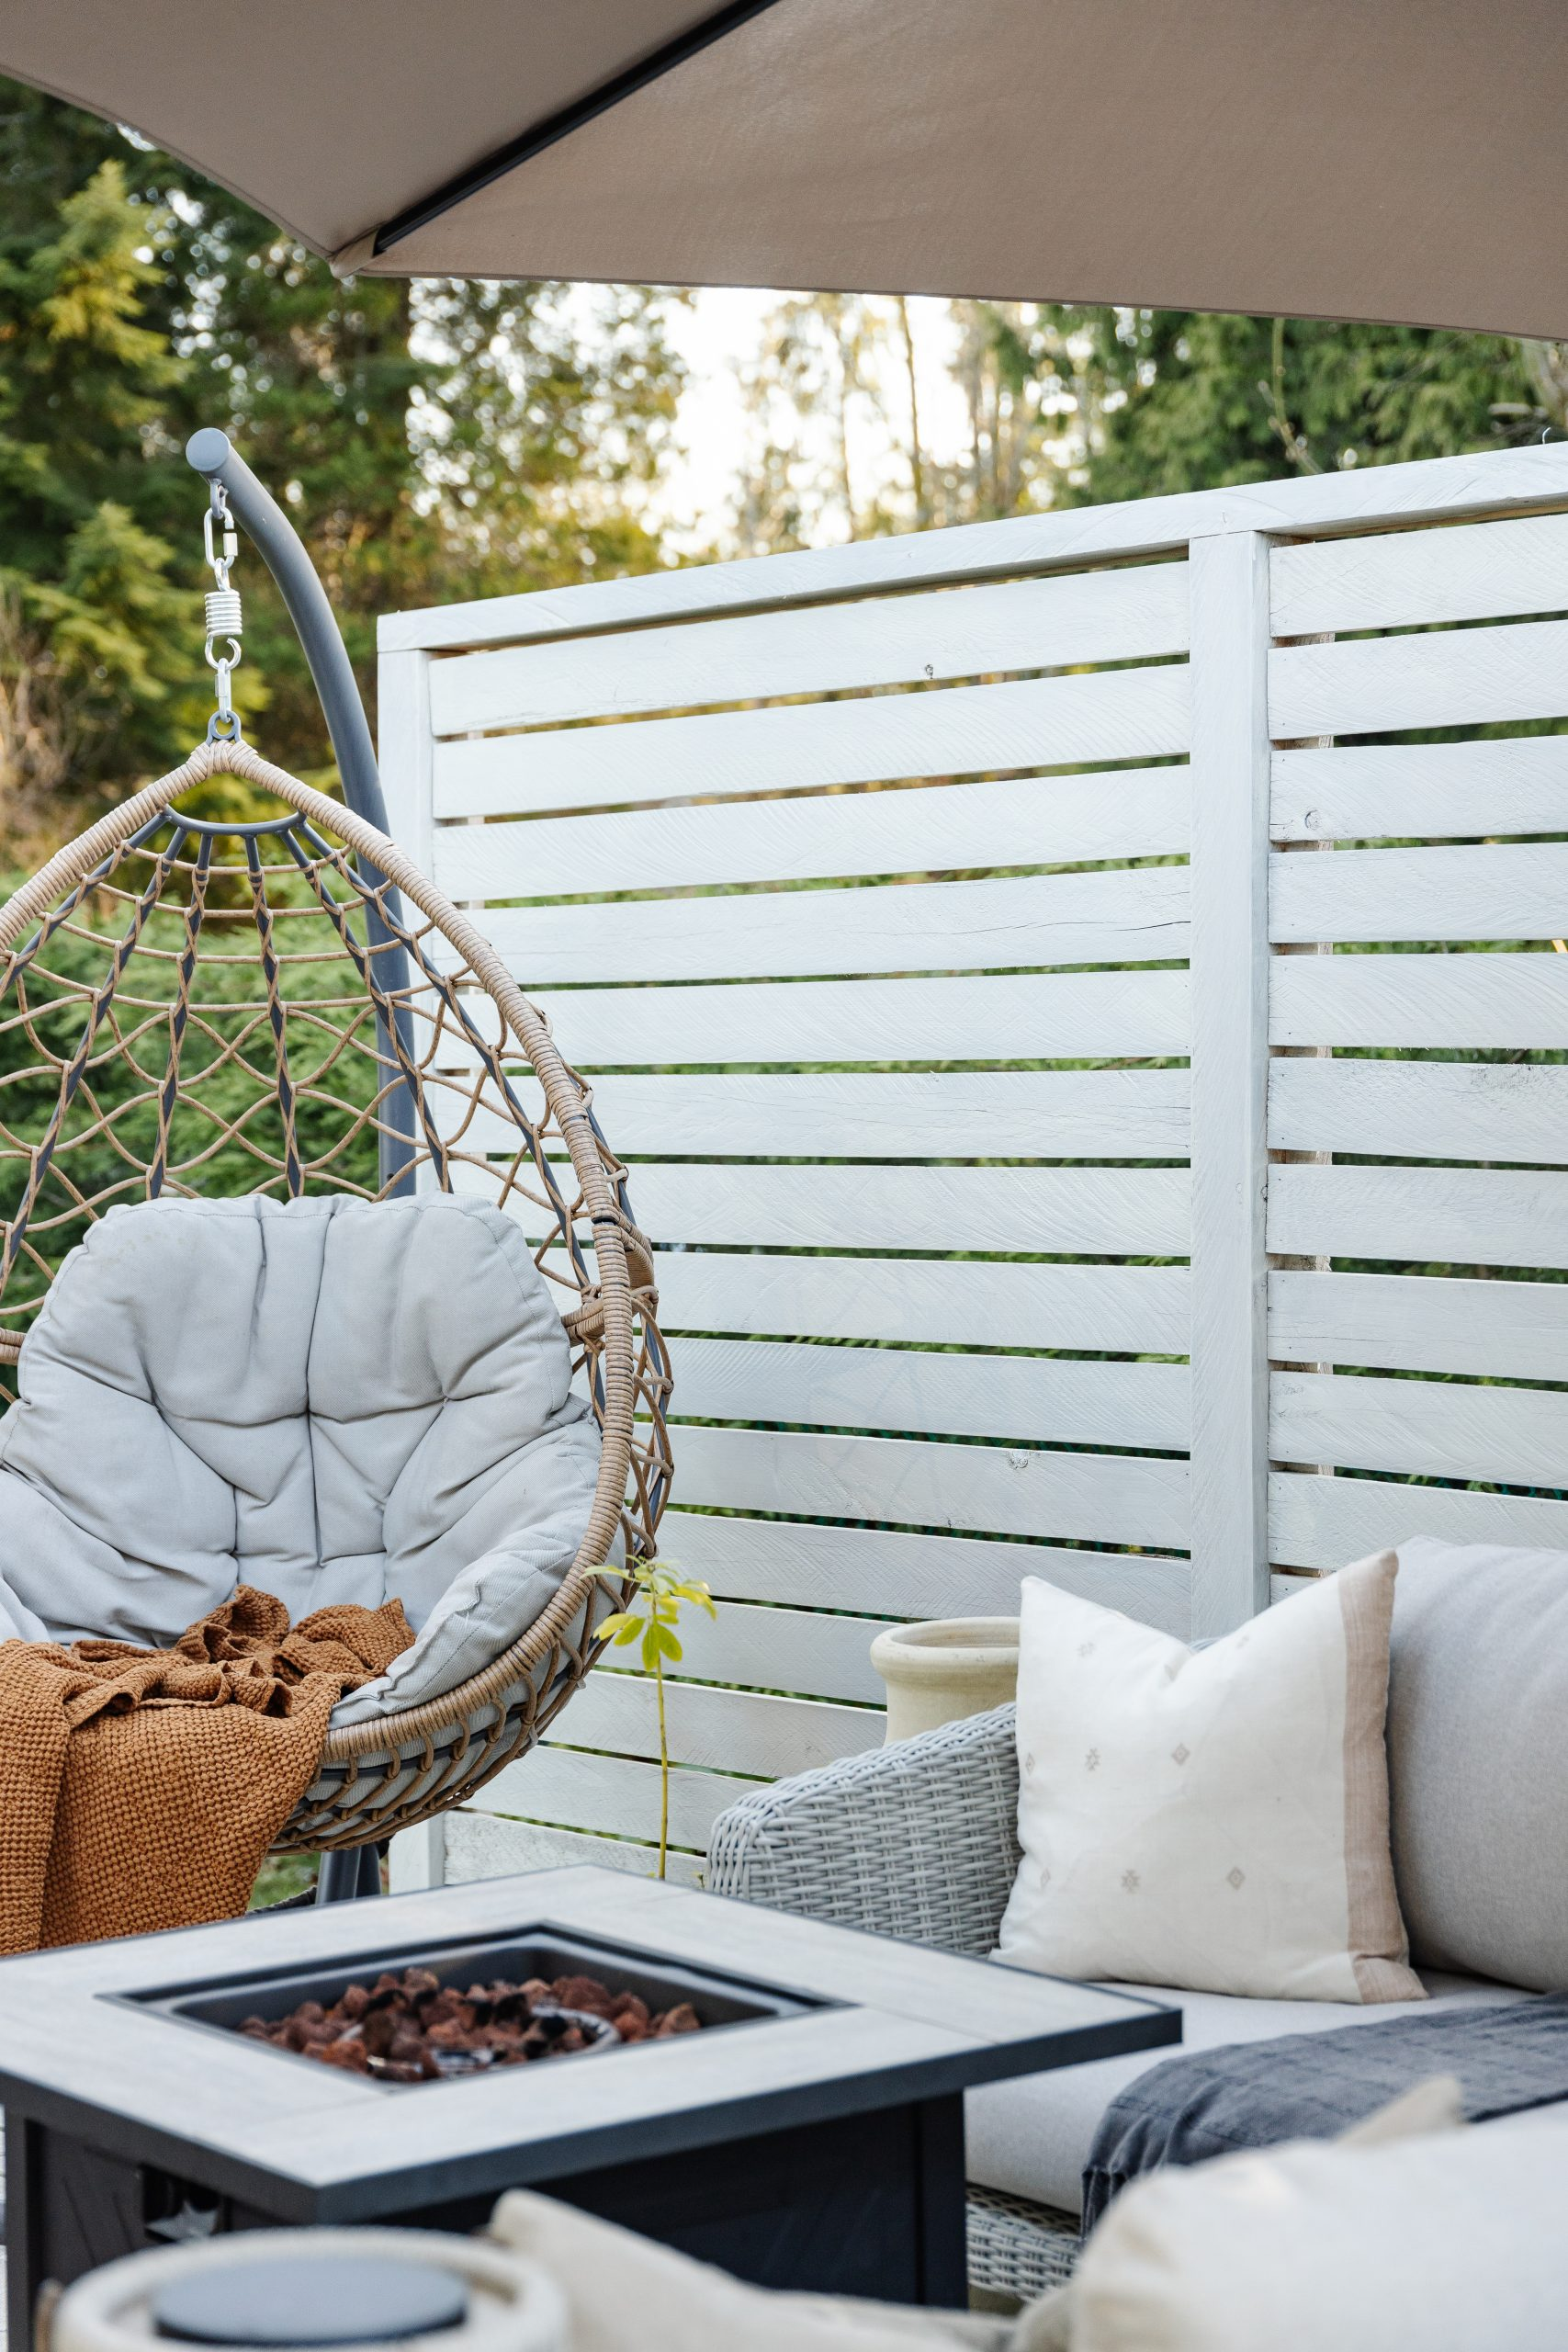 Coastal Deck Makeover. How we transformed our 1970's ugly brown deck in our tropical oasis. How to renovate your deck on a budget.